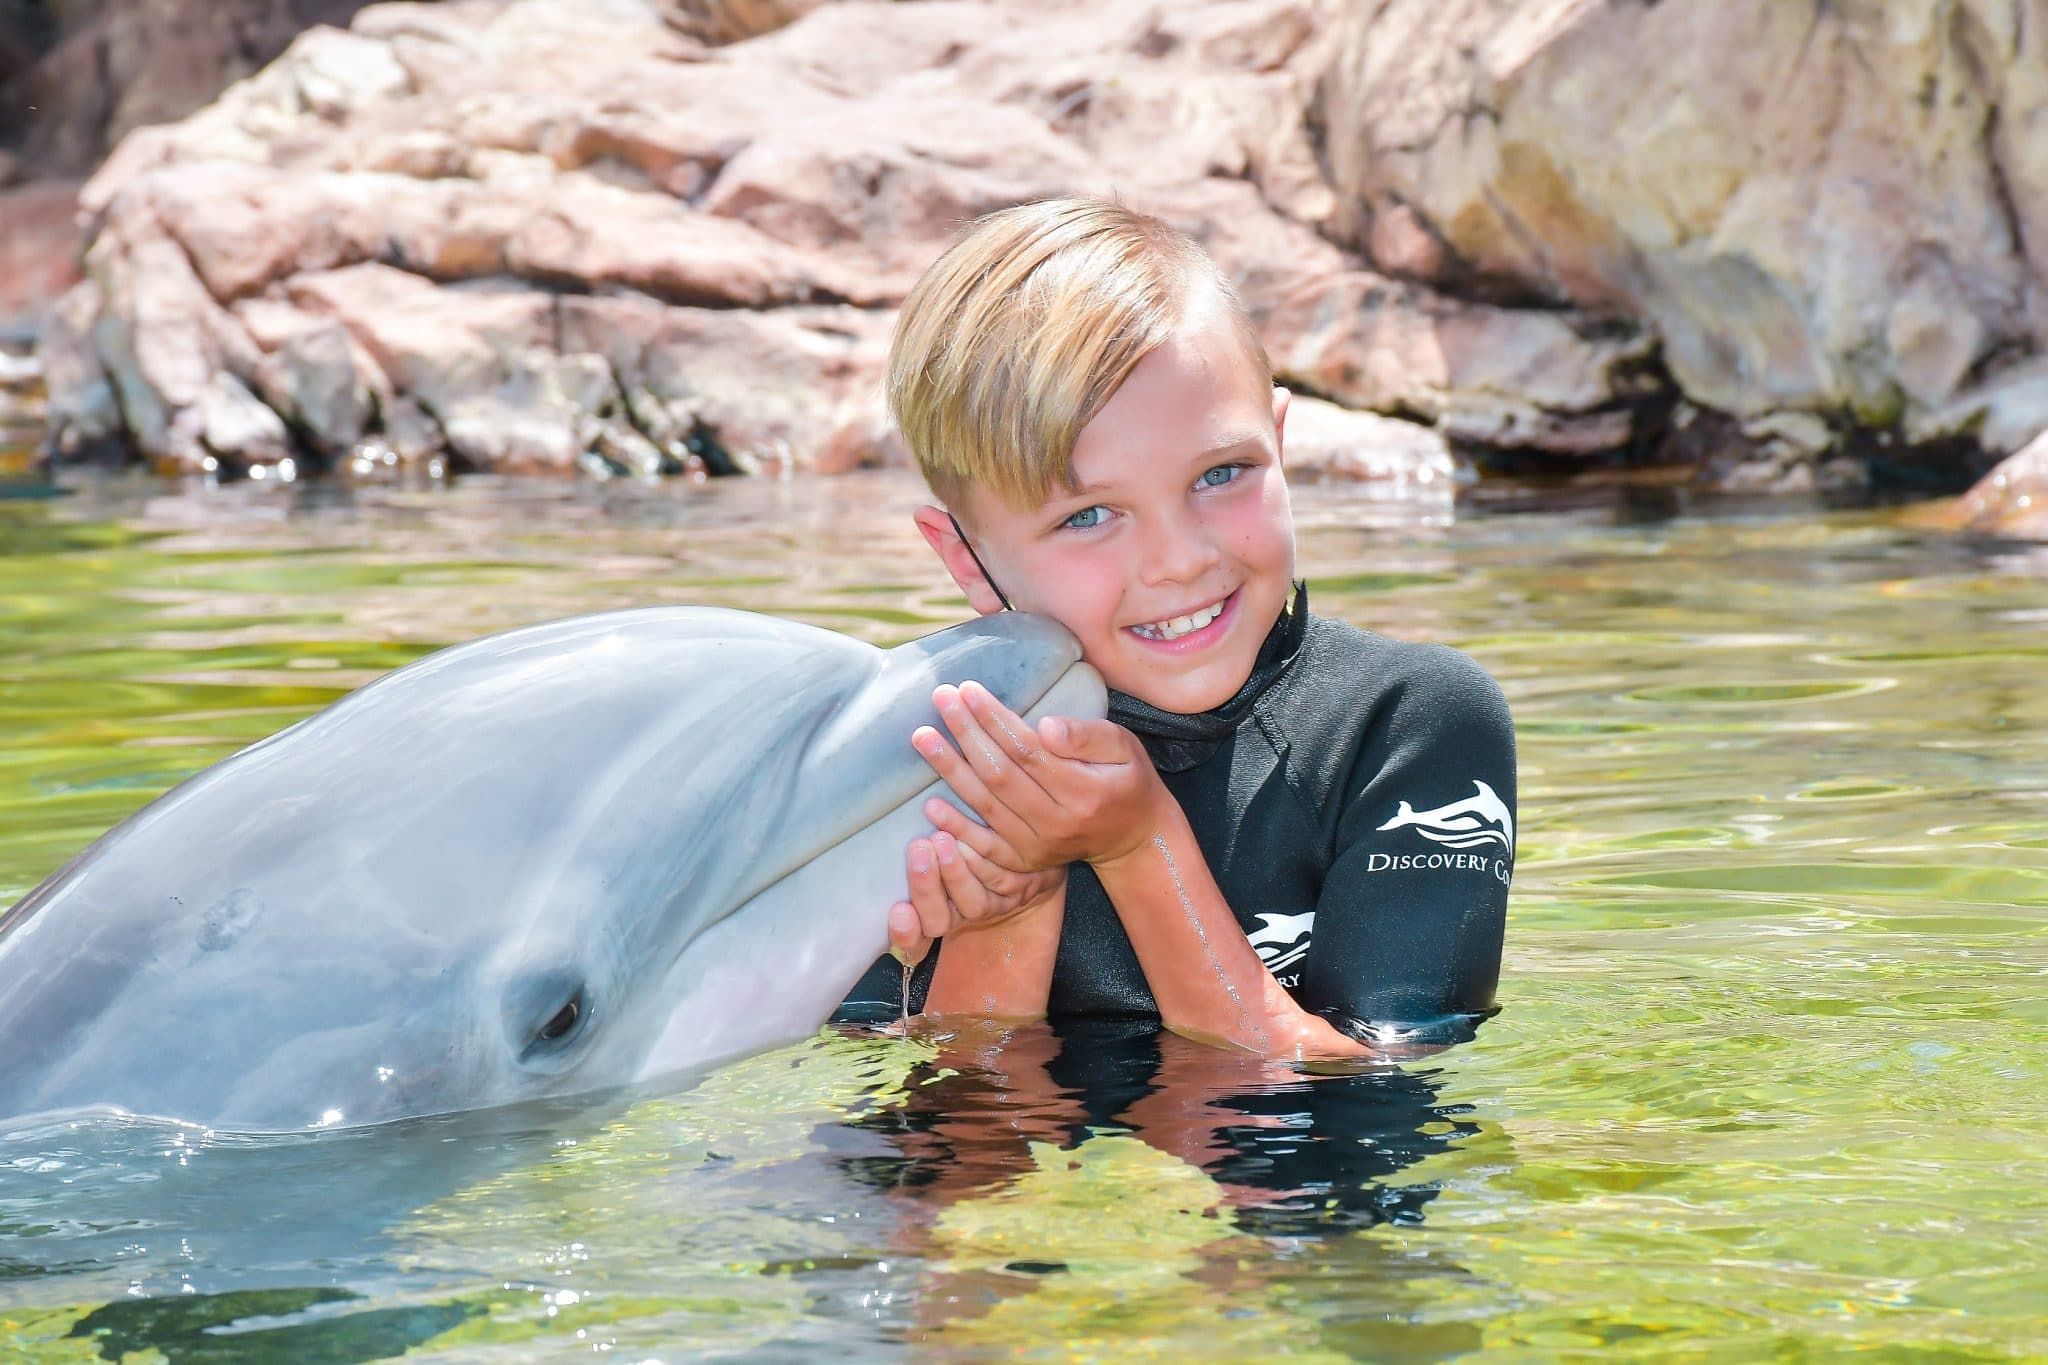 Discovery Cove swim with dolphins, Kissimmee Vacation, Family Travel, Florida All inclusive